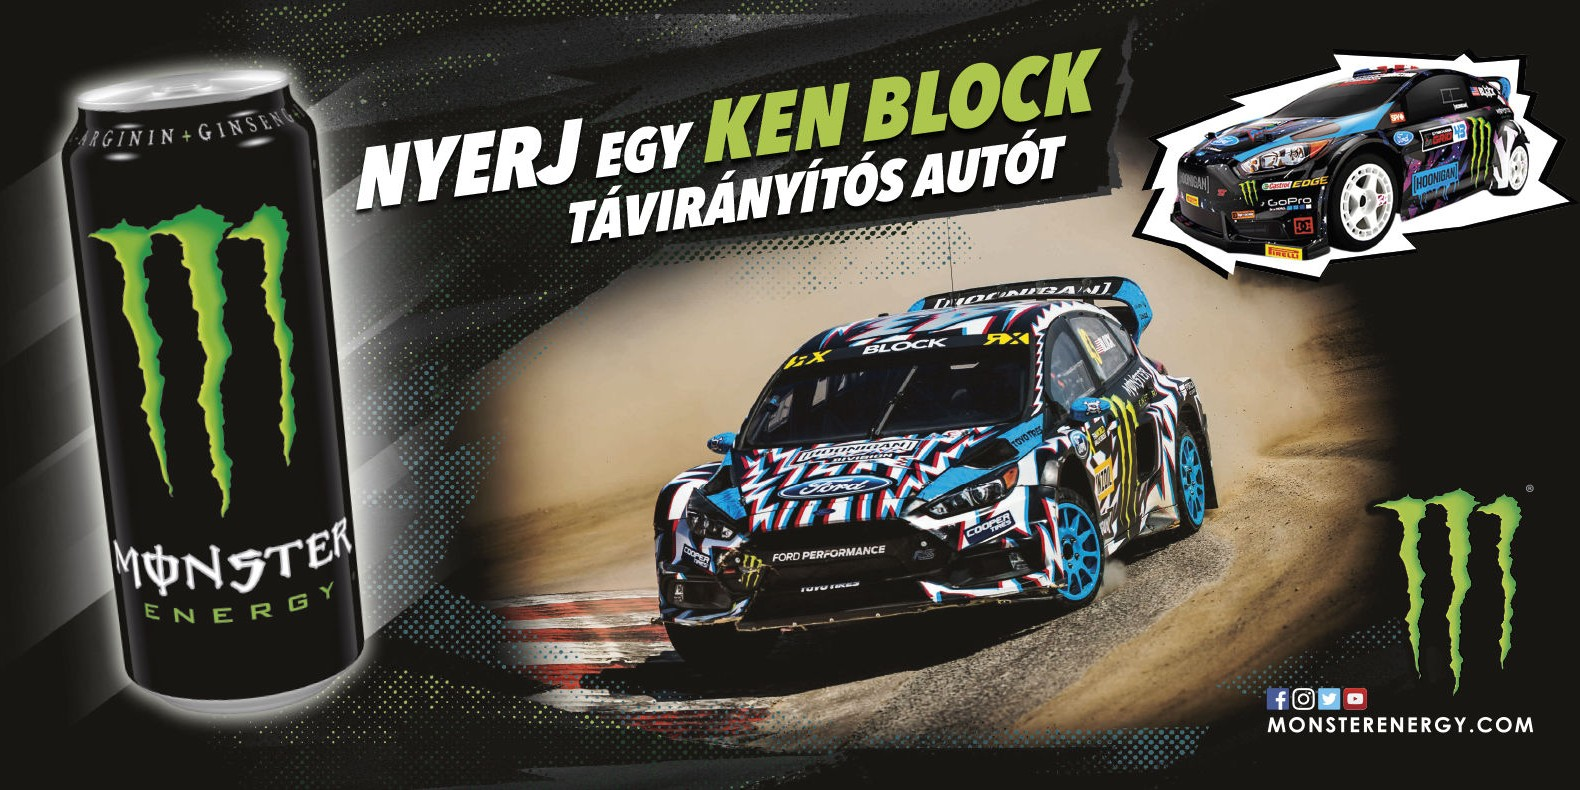 Artwork for Q2 Ken Block promotion in Hungary for COOP stores